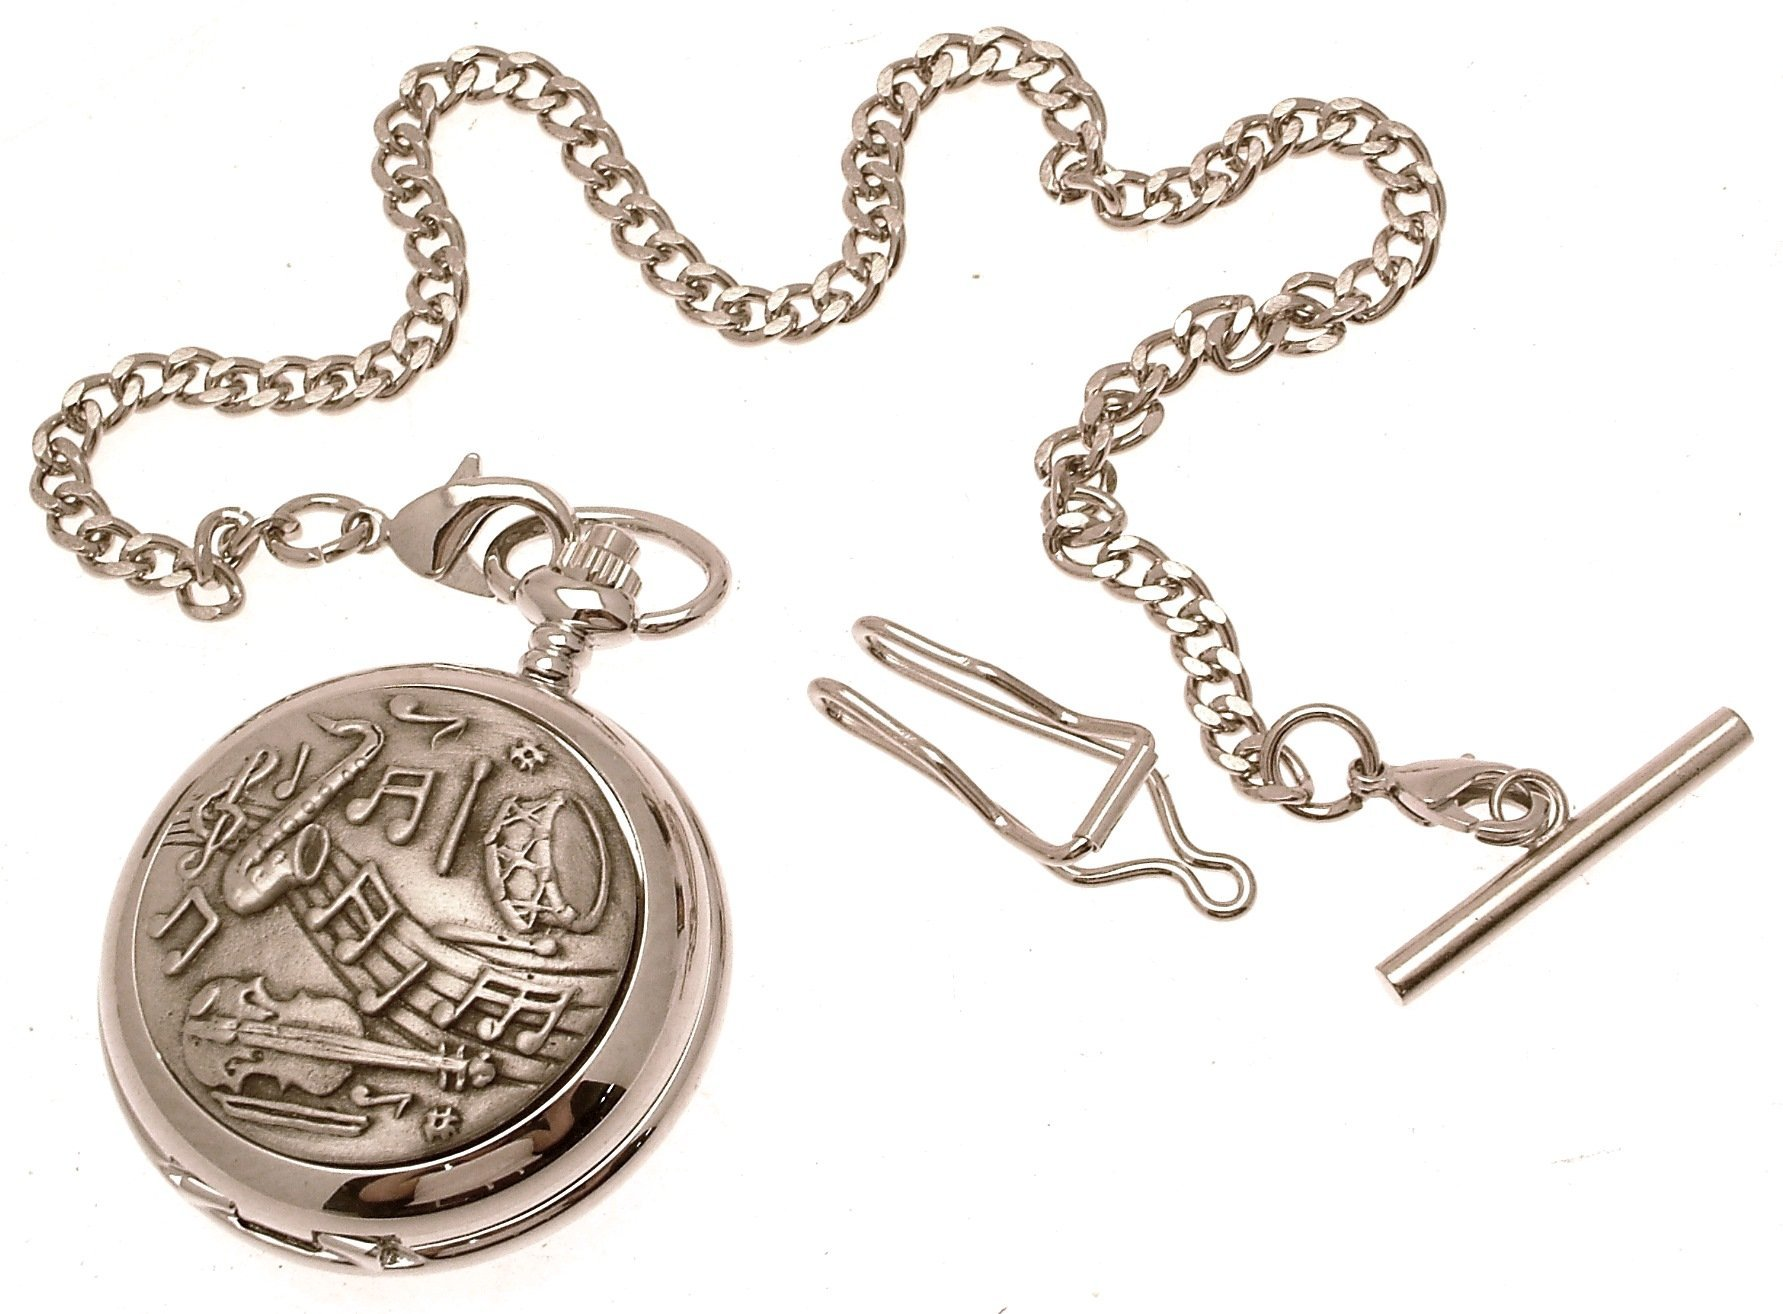 Engraving included - Pocket watch - Solid pewter fronted quartz pocket watch - Musical design 43